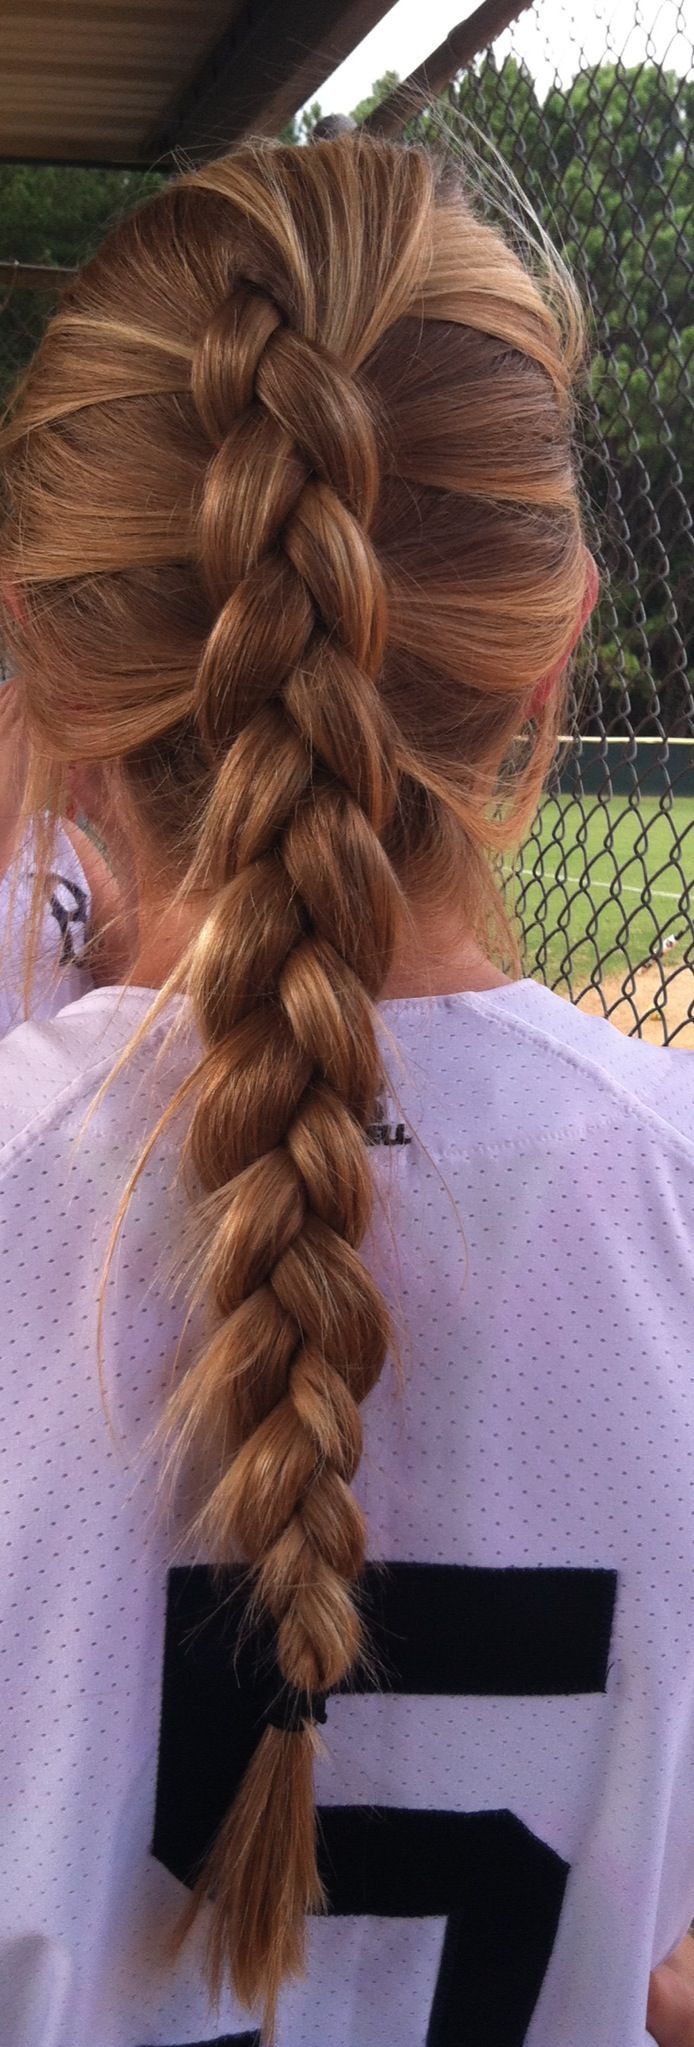 Sports hair :) me except i have two braids and it takes forever...Thank you mom!